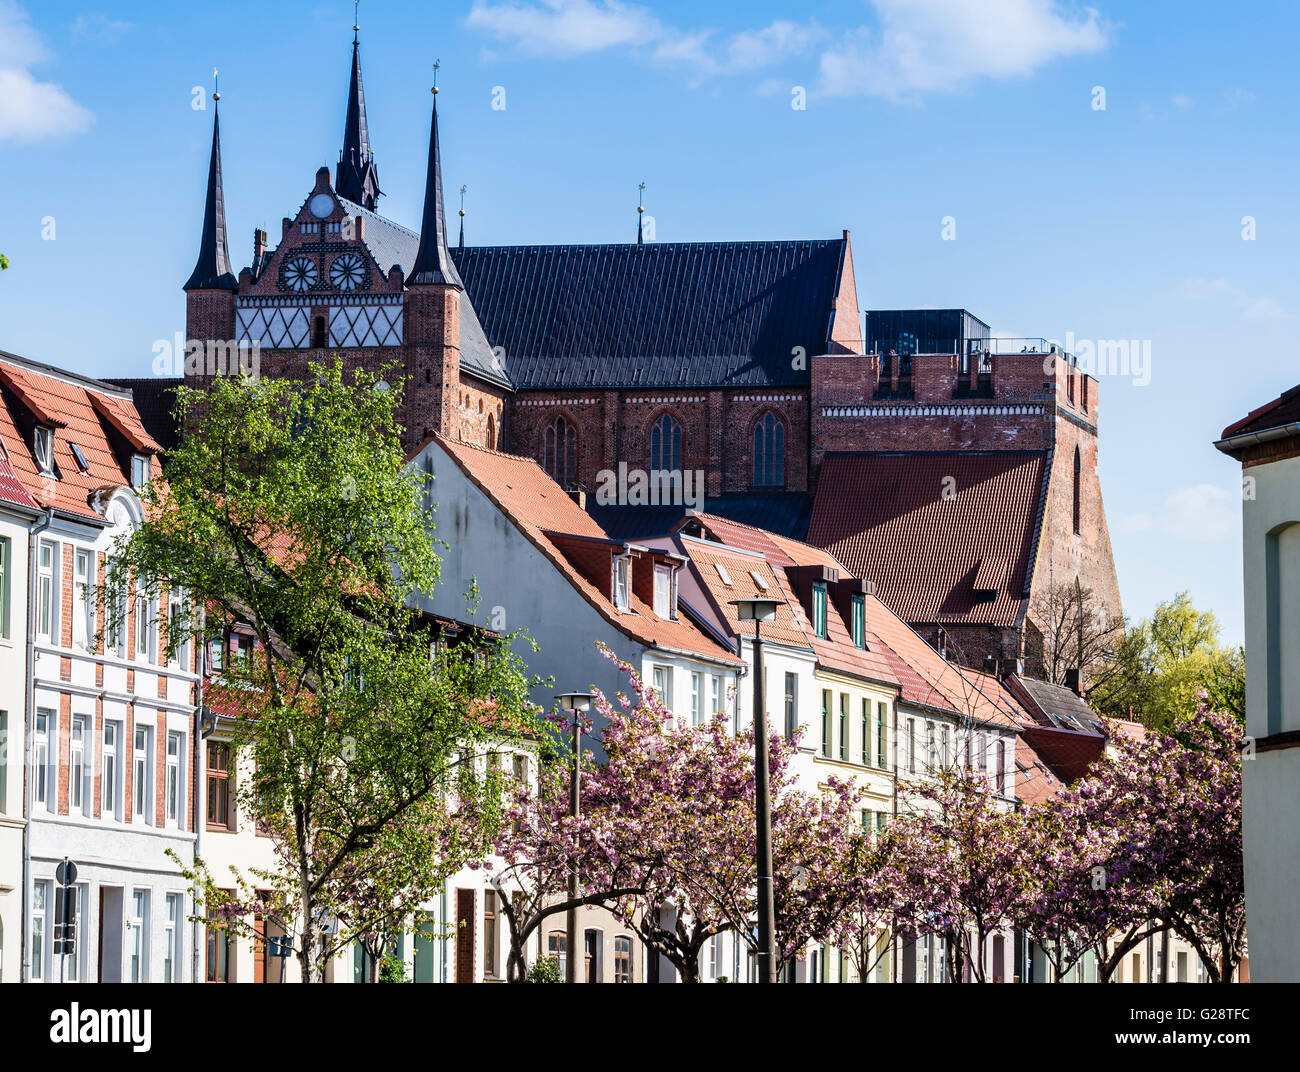 St. Georgen church, seen over row of houses, Wismar, Mecklenburg-Vorpommern, Germany - Stock Image